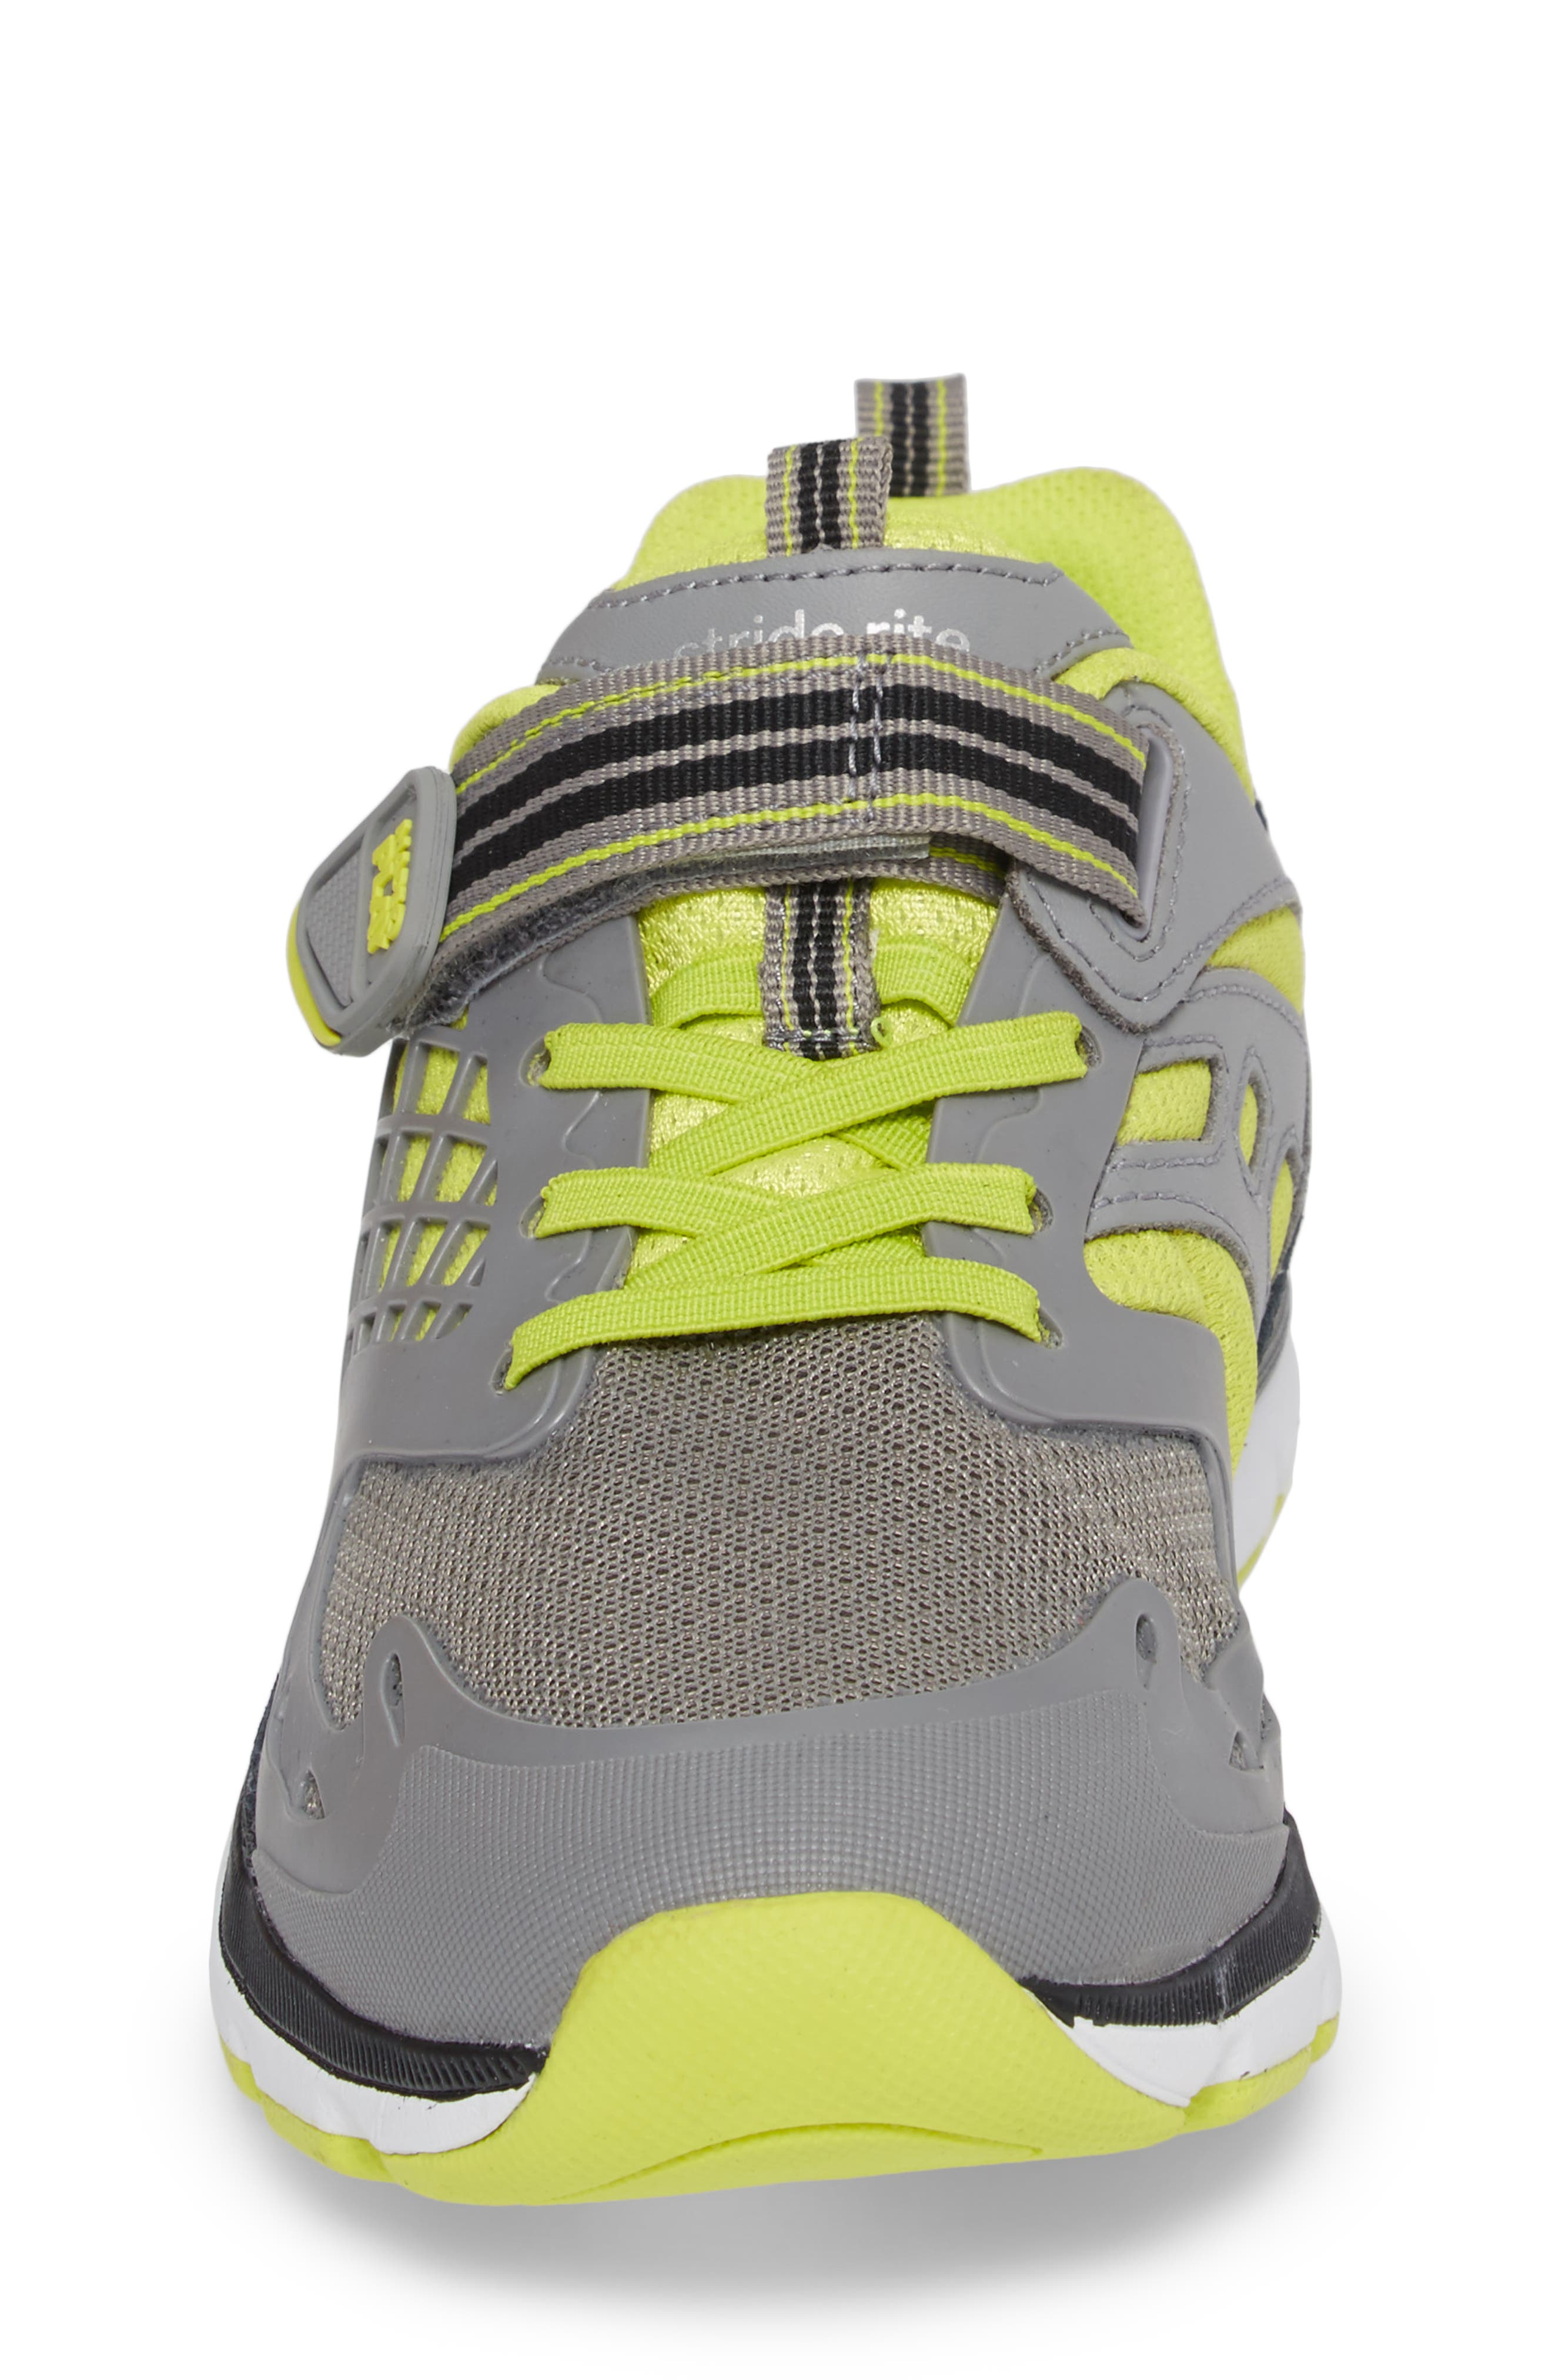 Made 2 Play Breccen Sneaker,                             Alternate thumbnail 4, color,                             Grey/ Lime Leather/ Textile